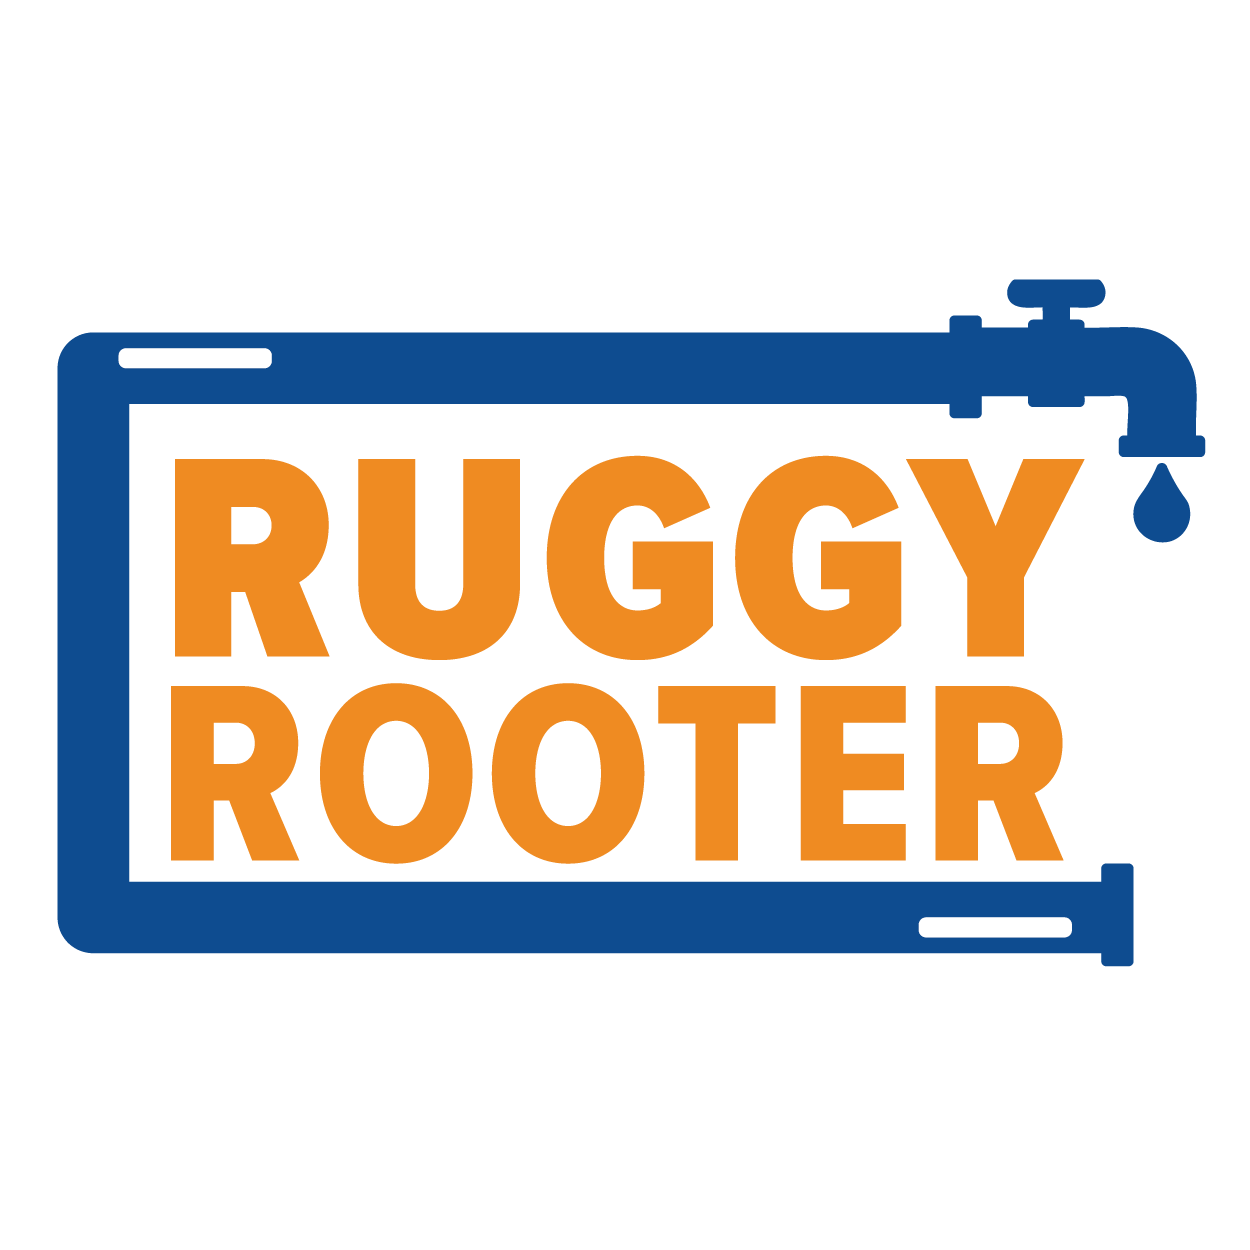 Ruggy Rooter